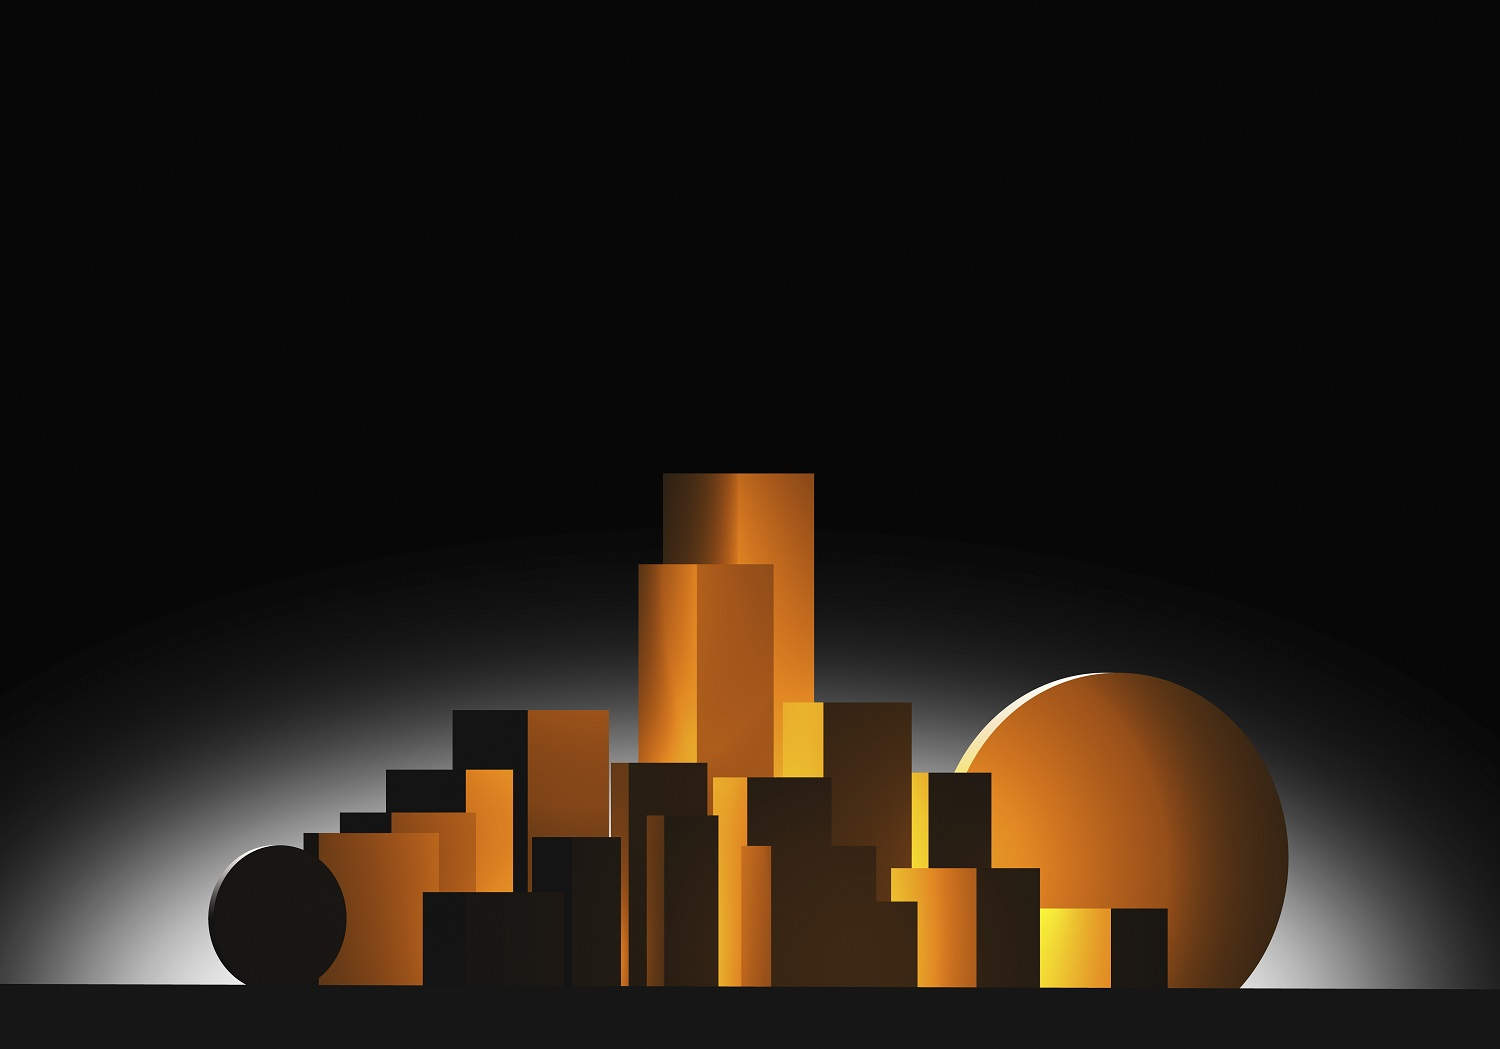 gold geometric shapes resembling a city skyline